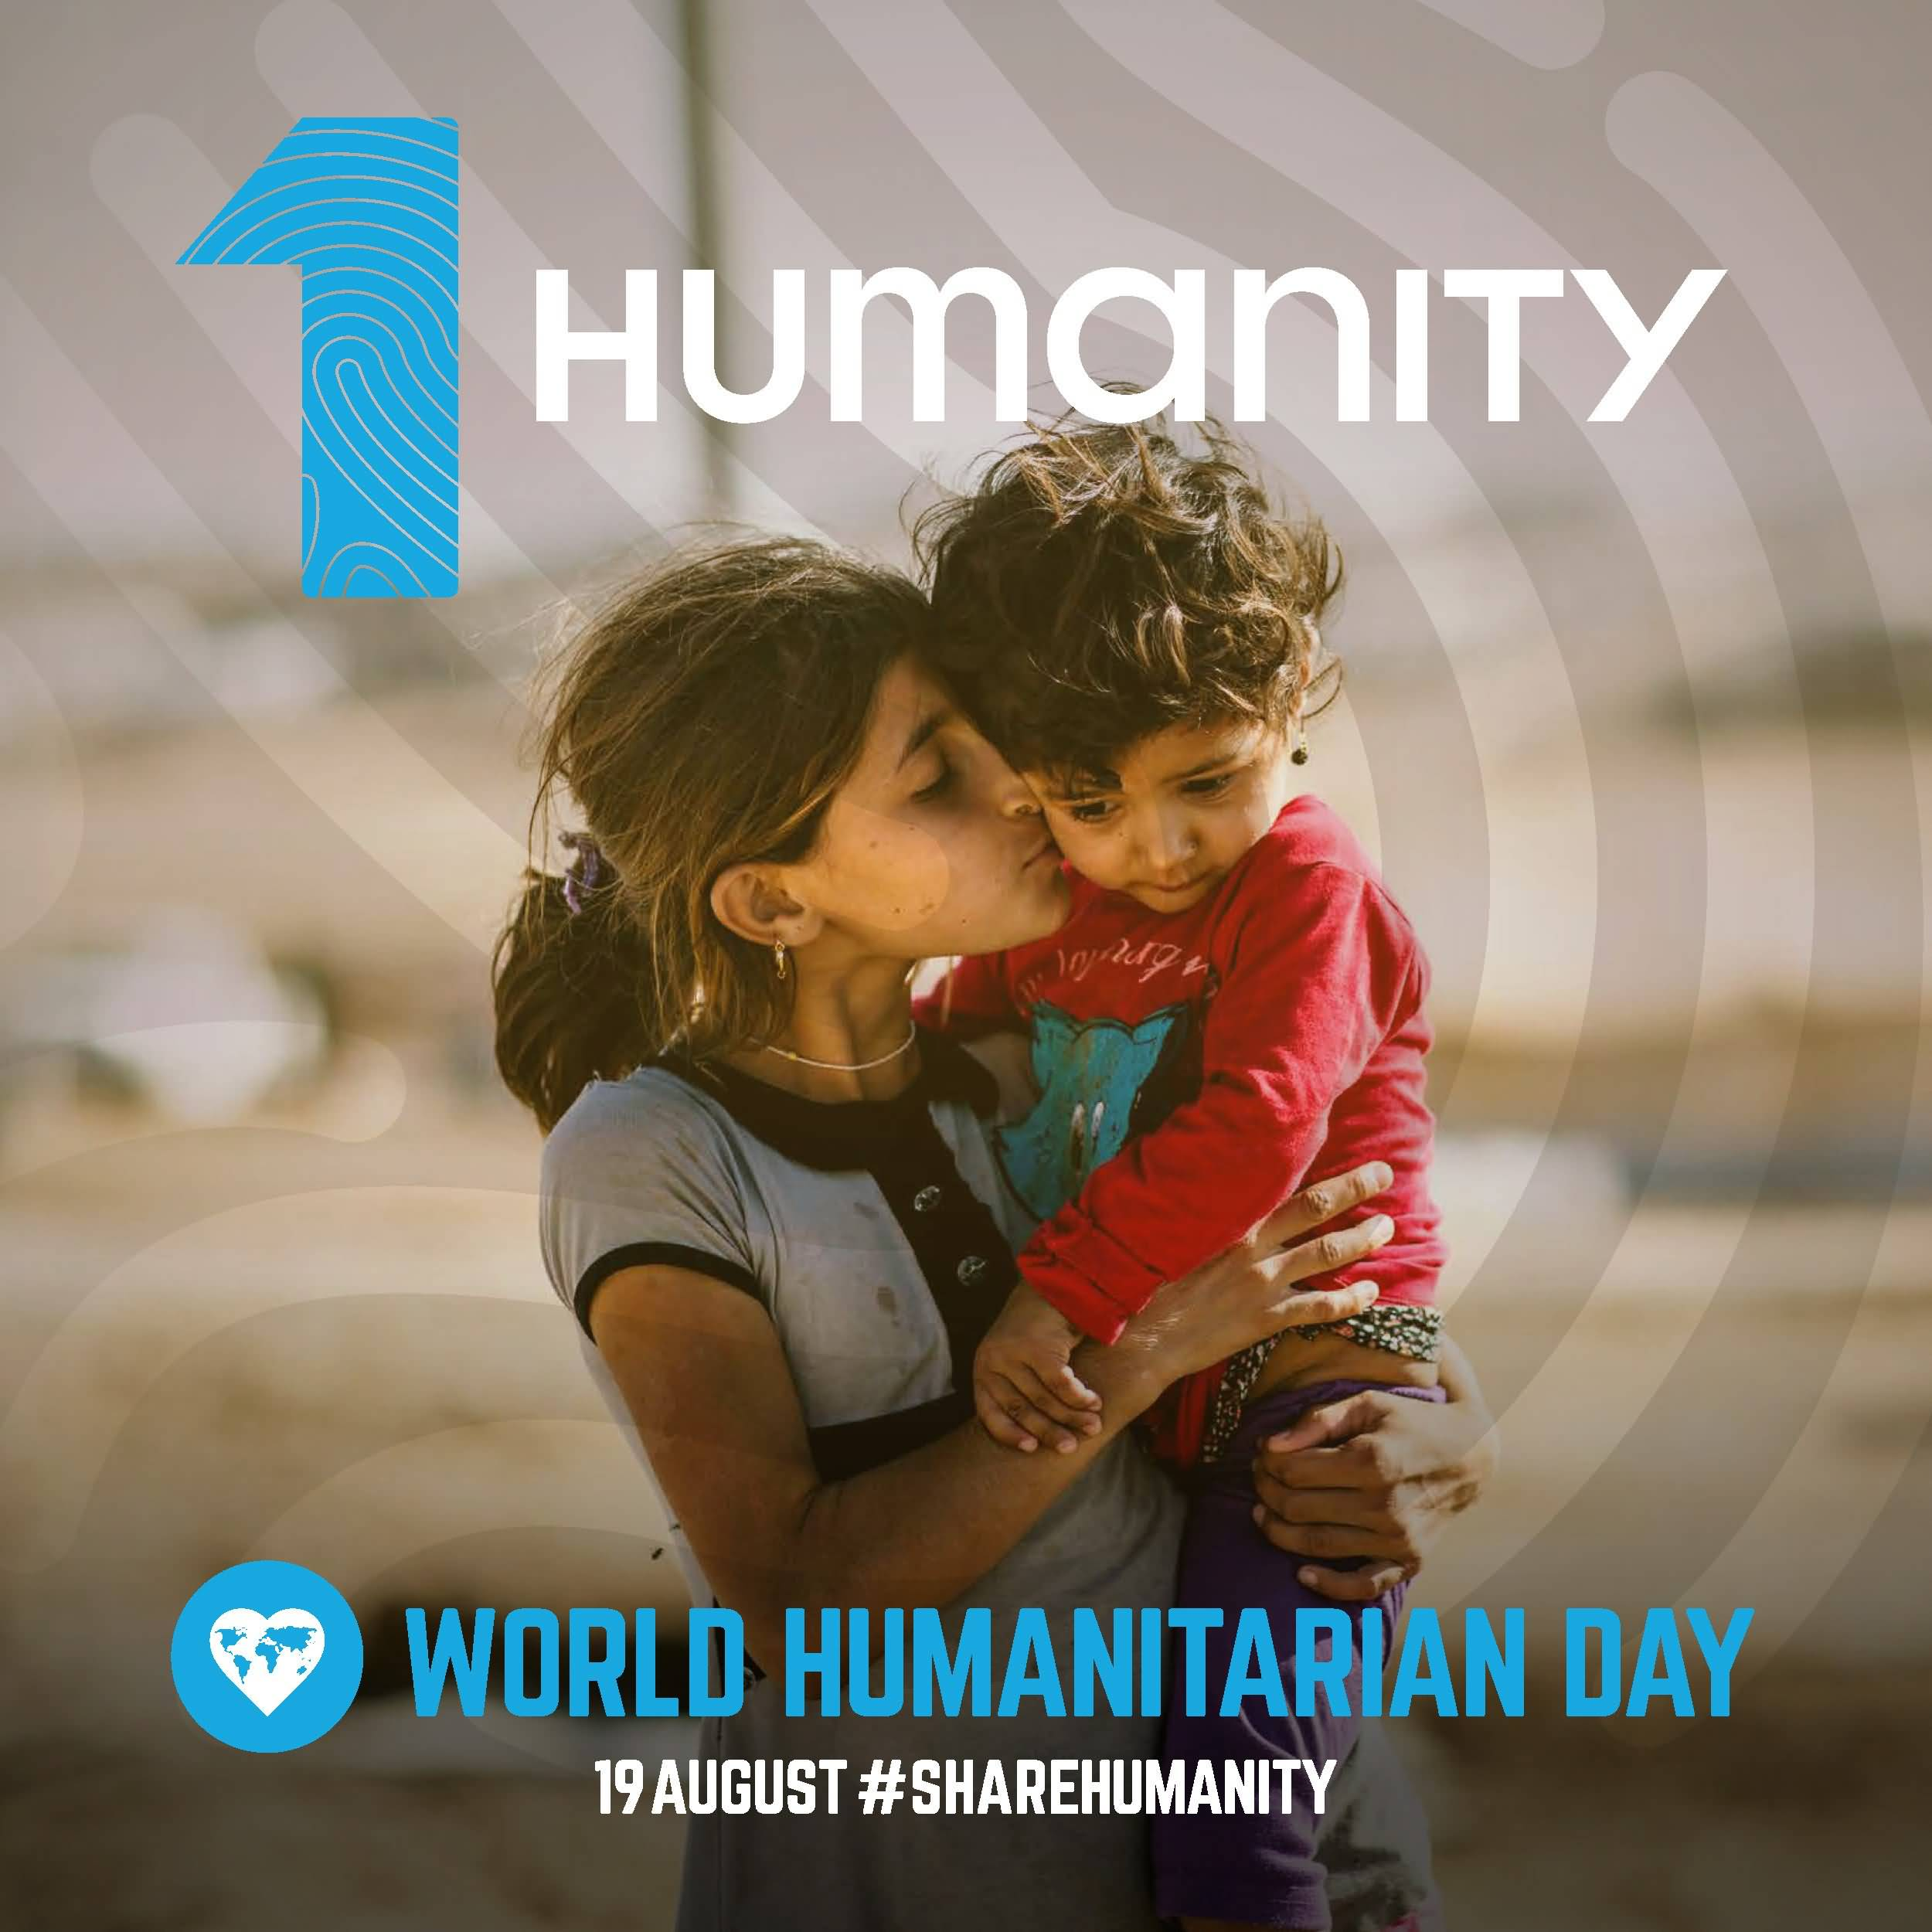 Inspire The World's Humanitarian Day 19 August